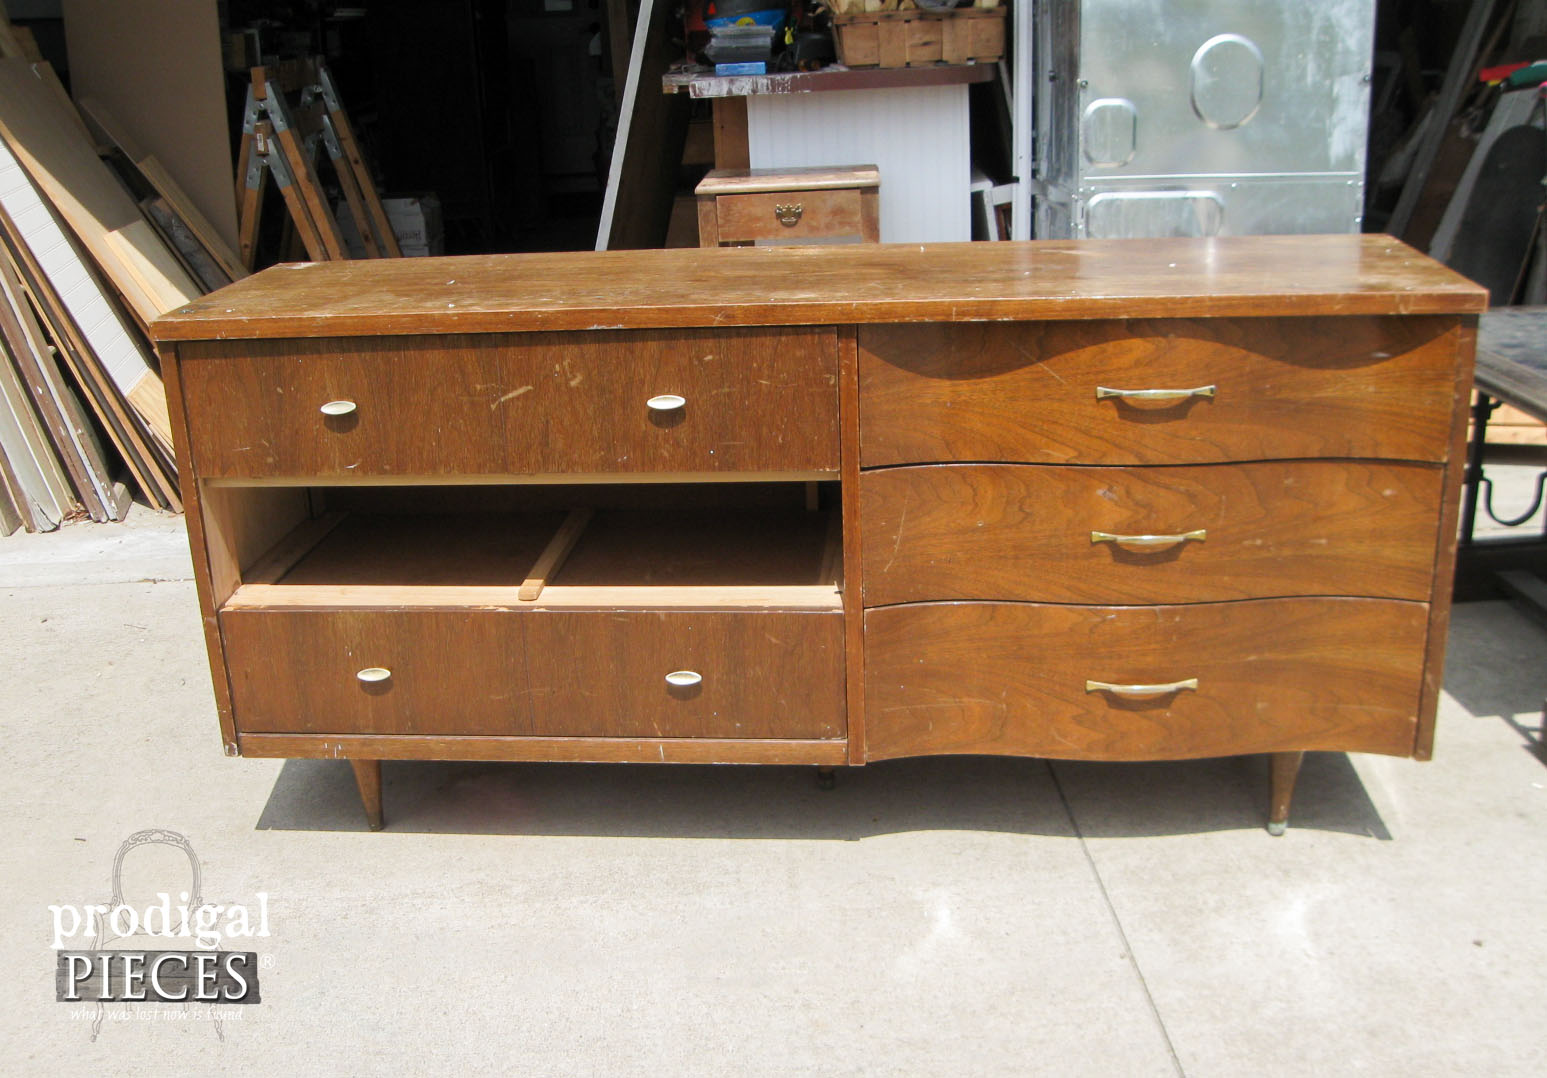 Curbside Mid Century Modern Crredenza Before Entertainment Console | Prodigal Pieces | www.prodigalpieces.com